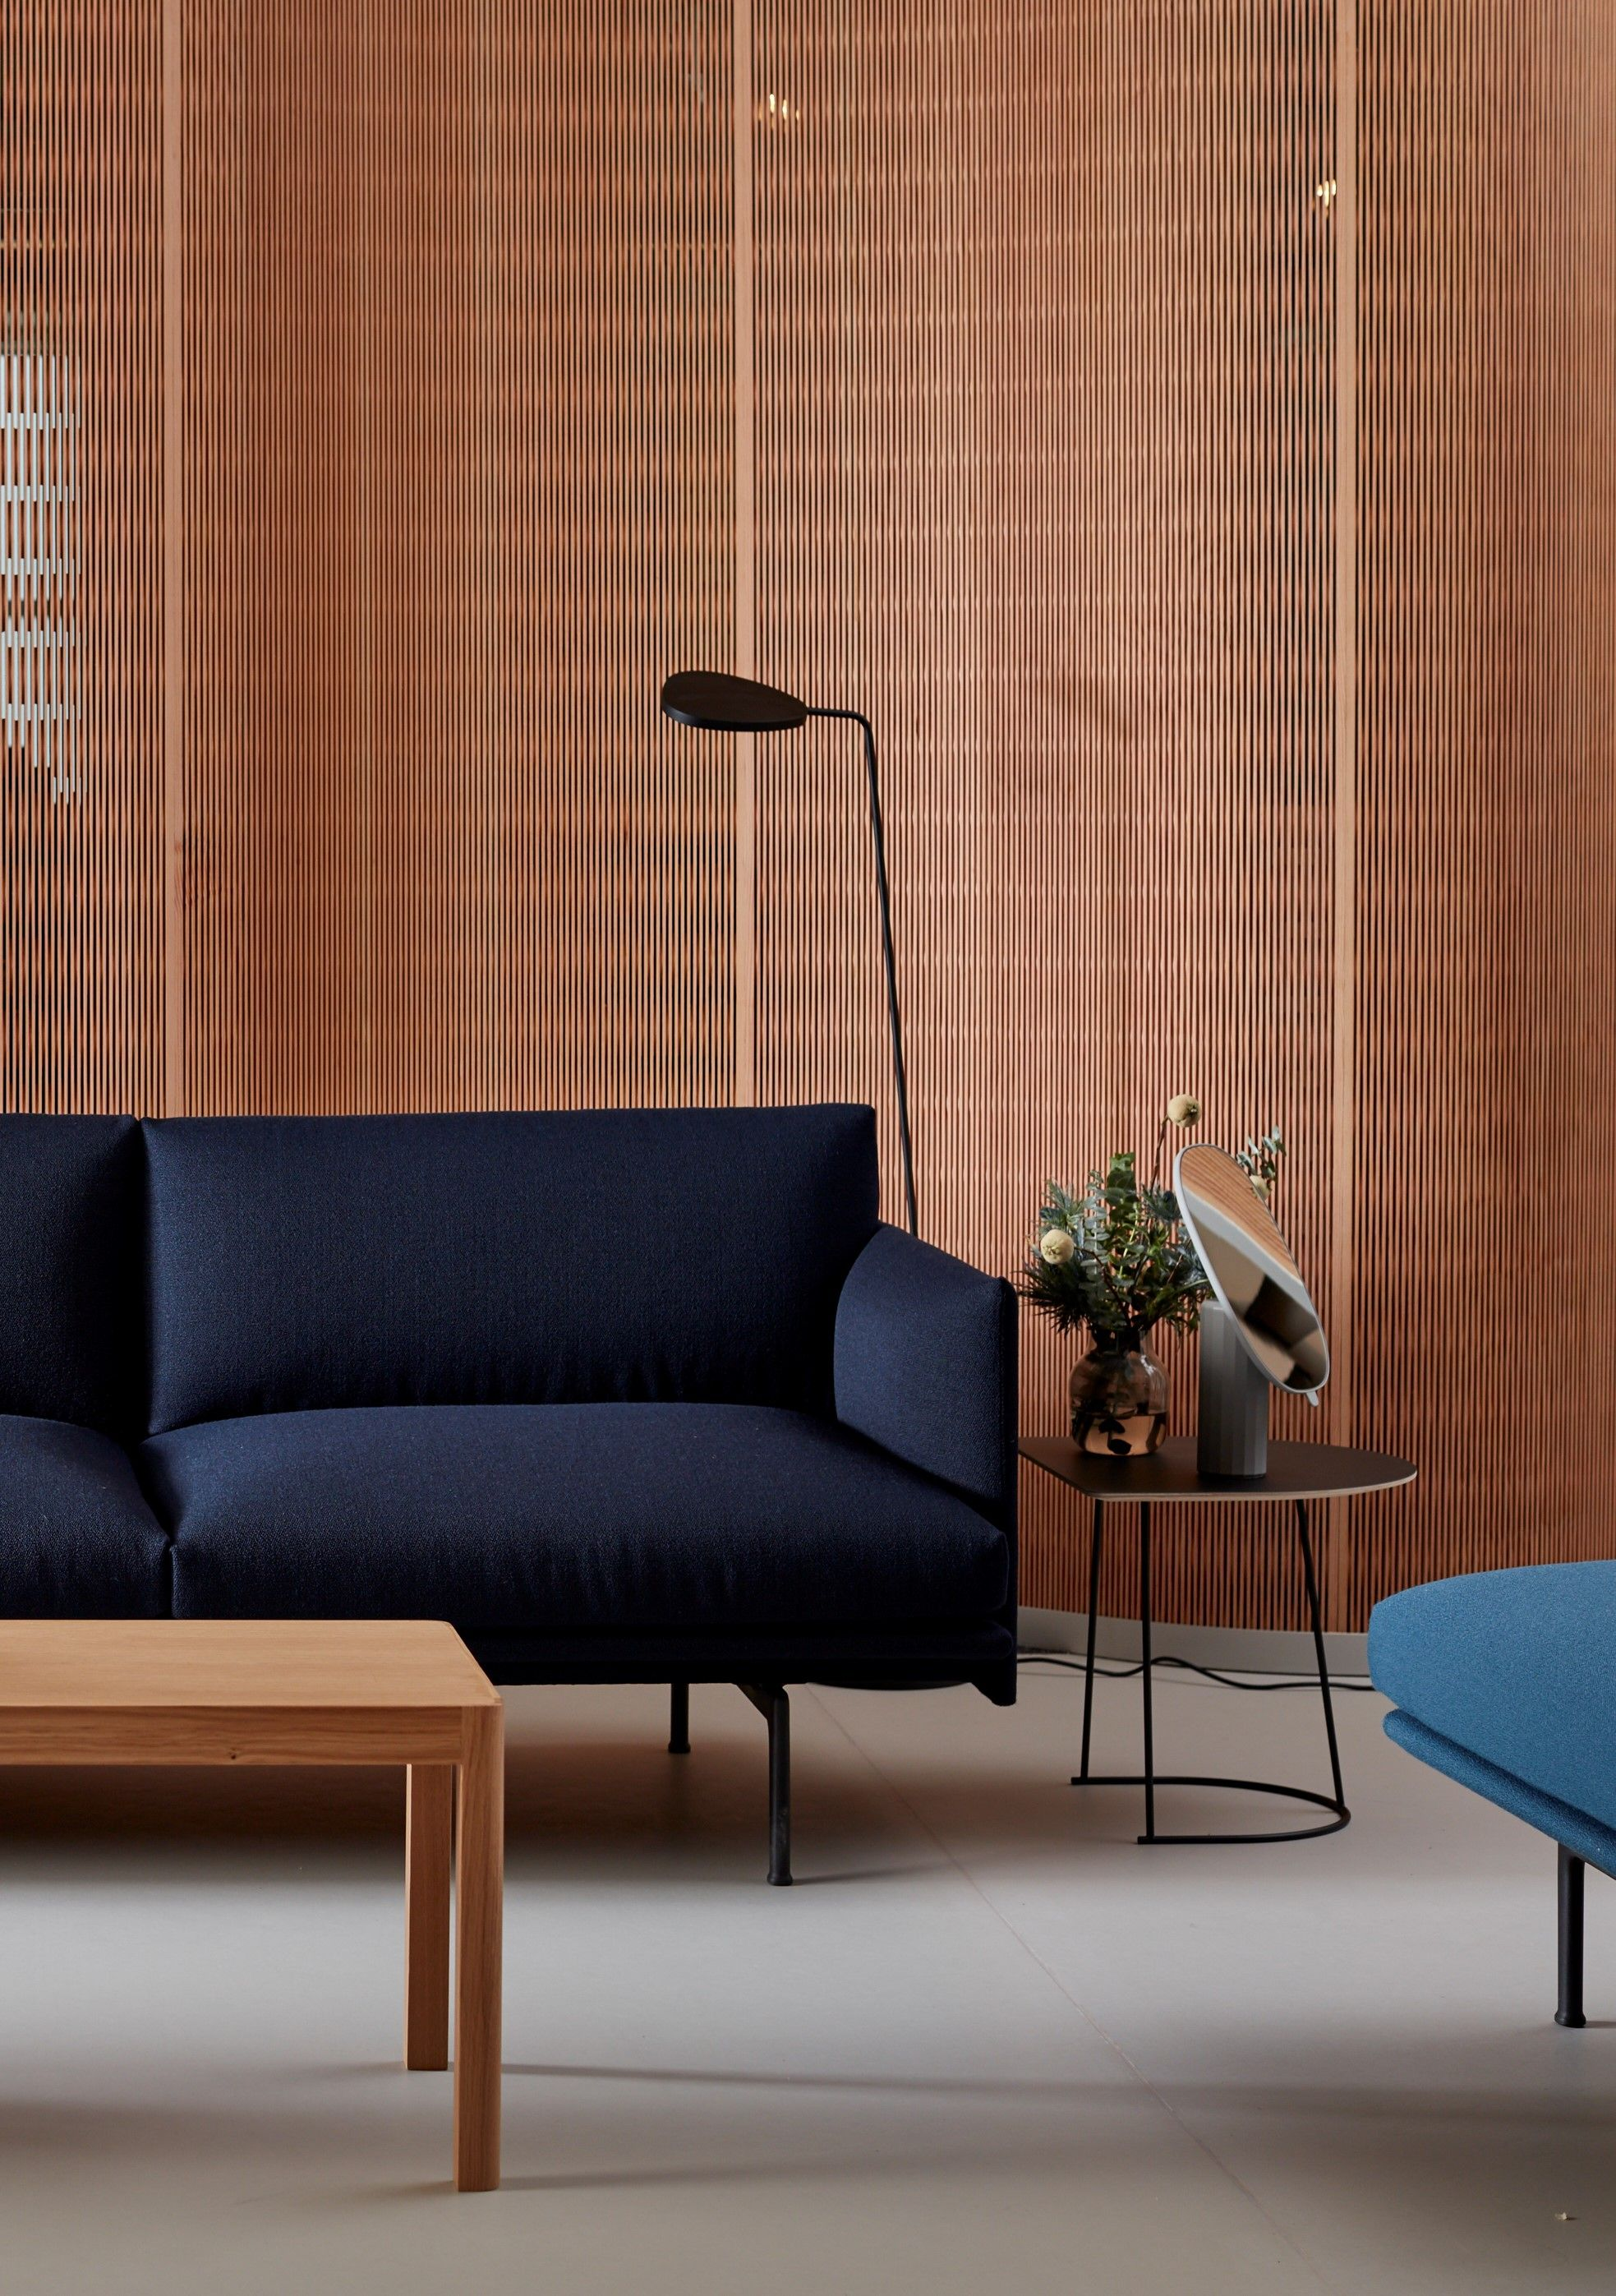 The Outline Sofa 3 1 2 Seater Combined With The Leaf Floor Lamp And